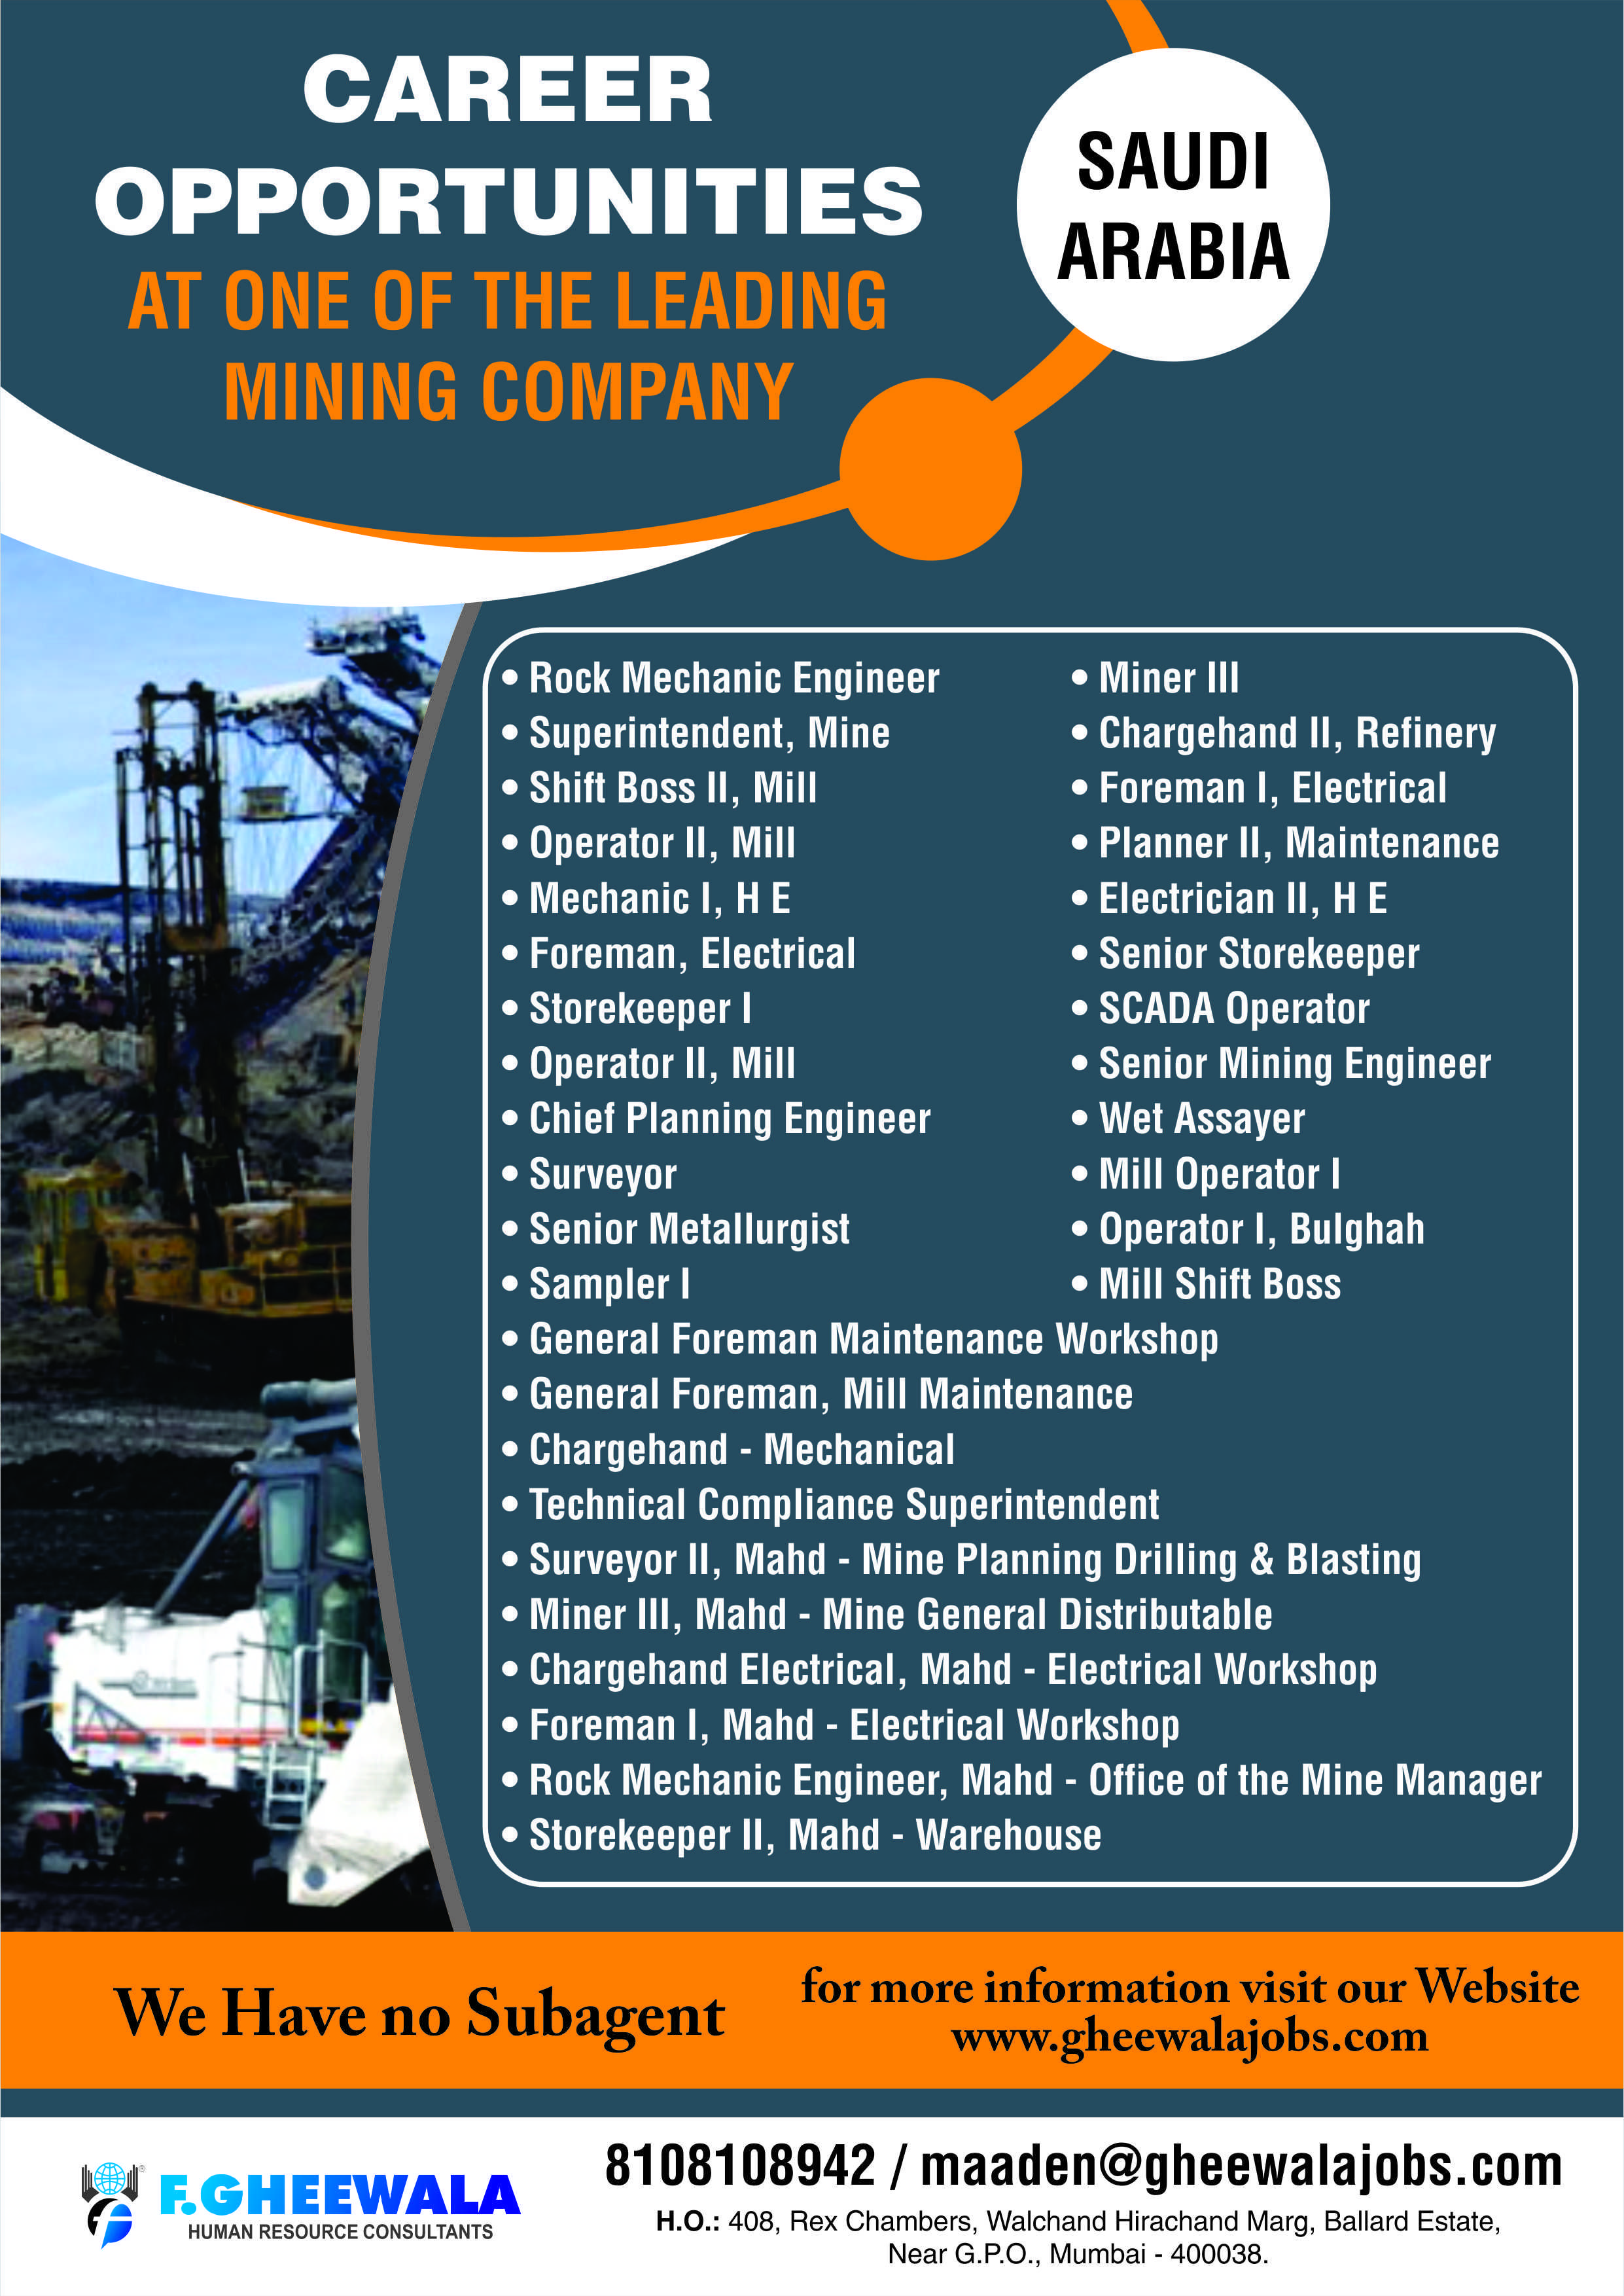 Career Opportunity at one of the Leading Mining Company in